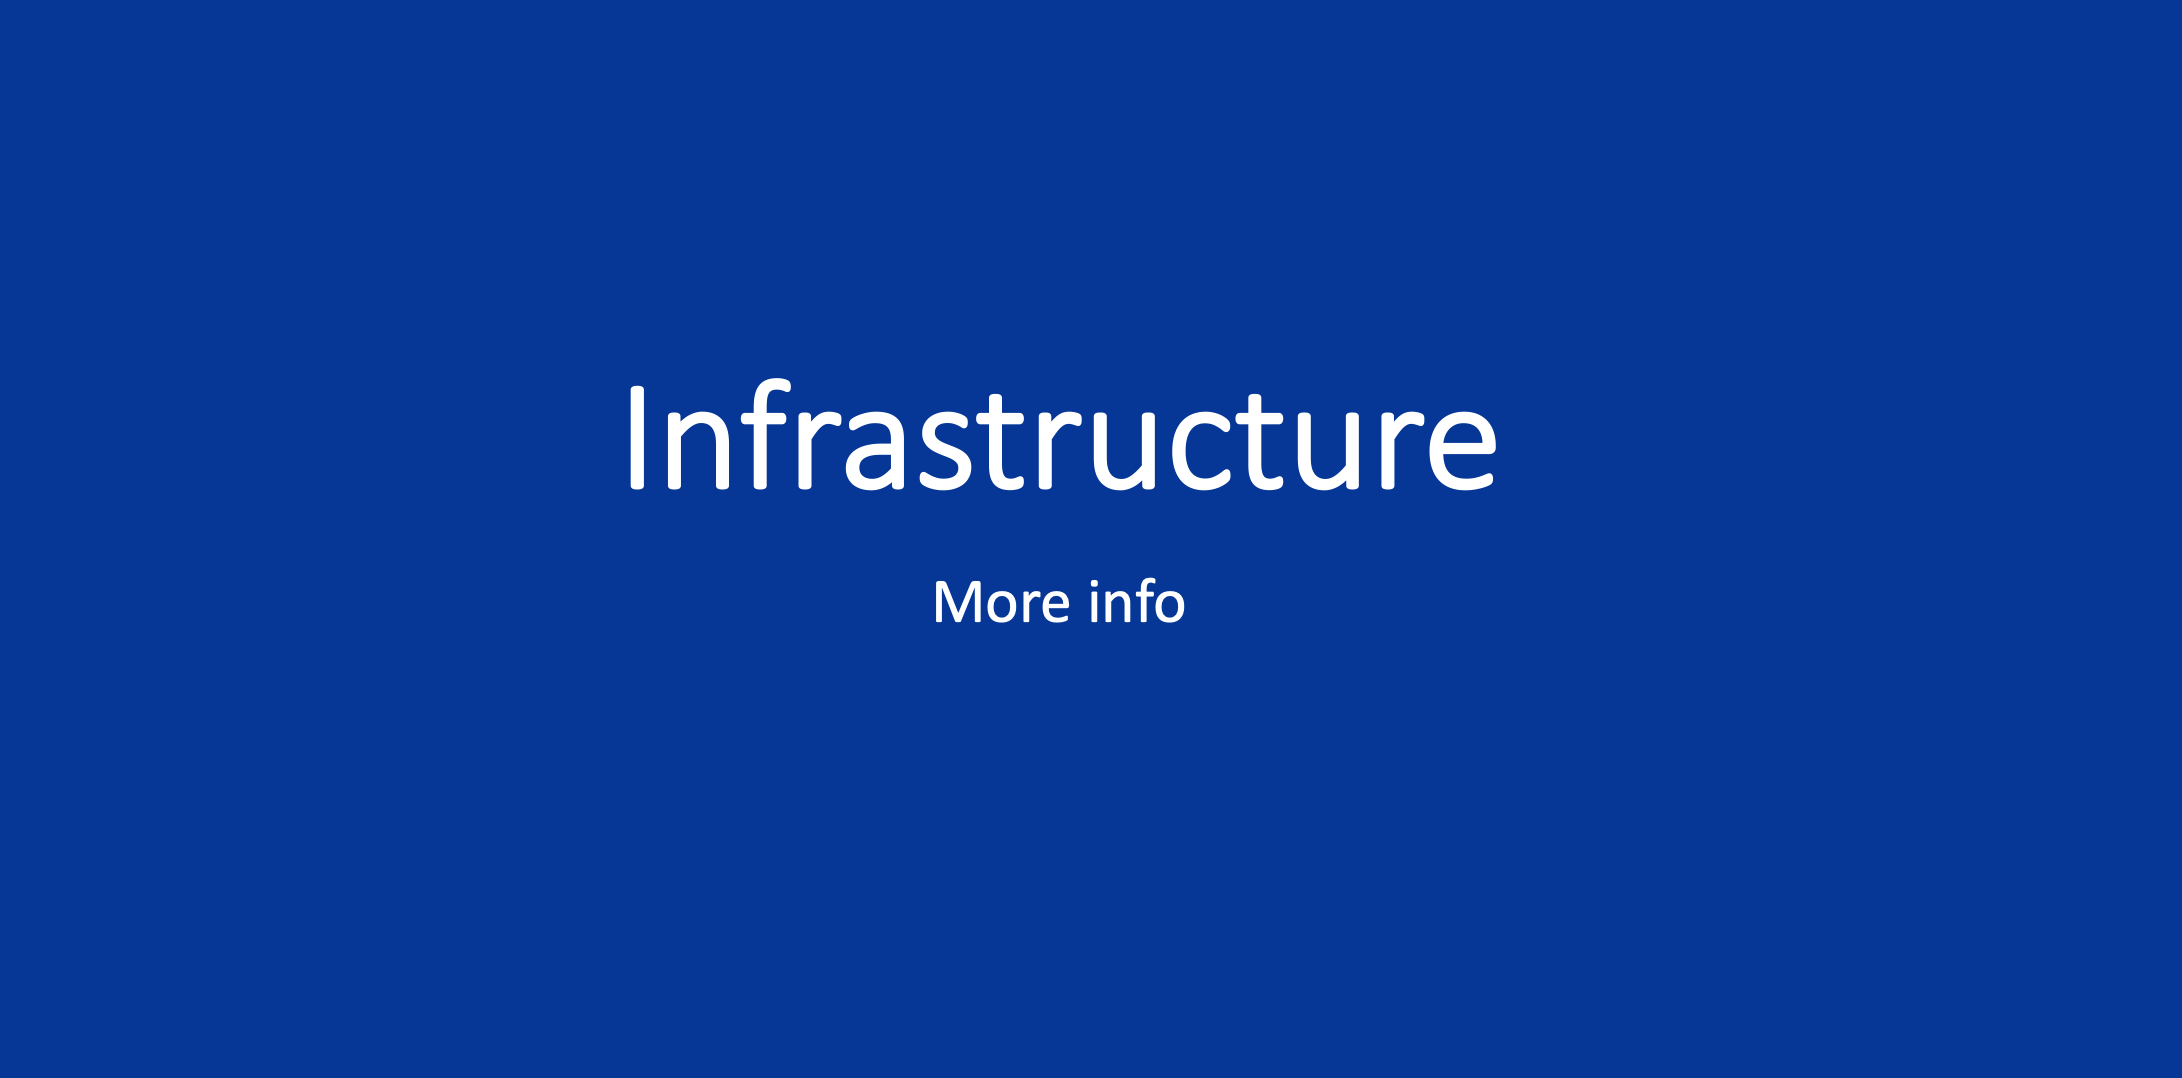 Infrastructure blue box